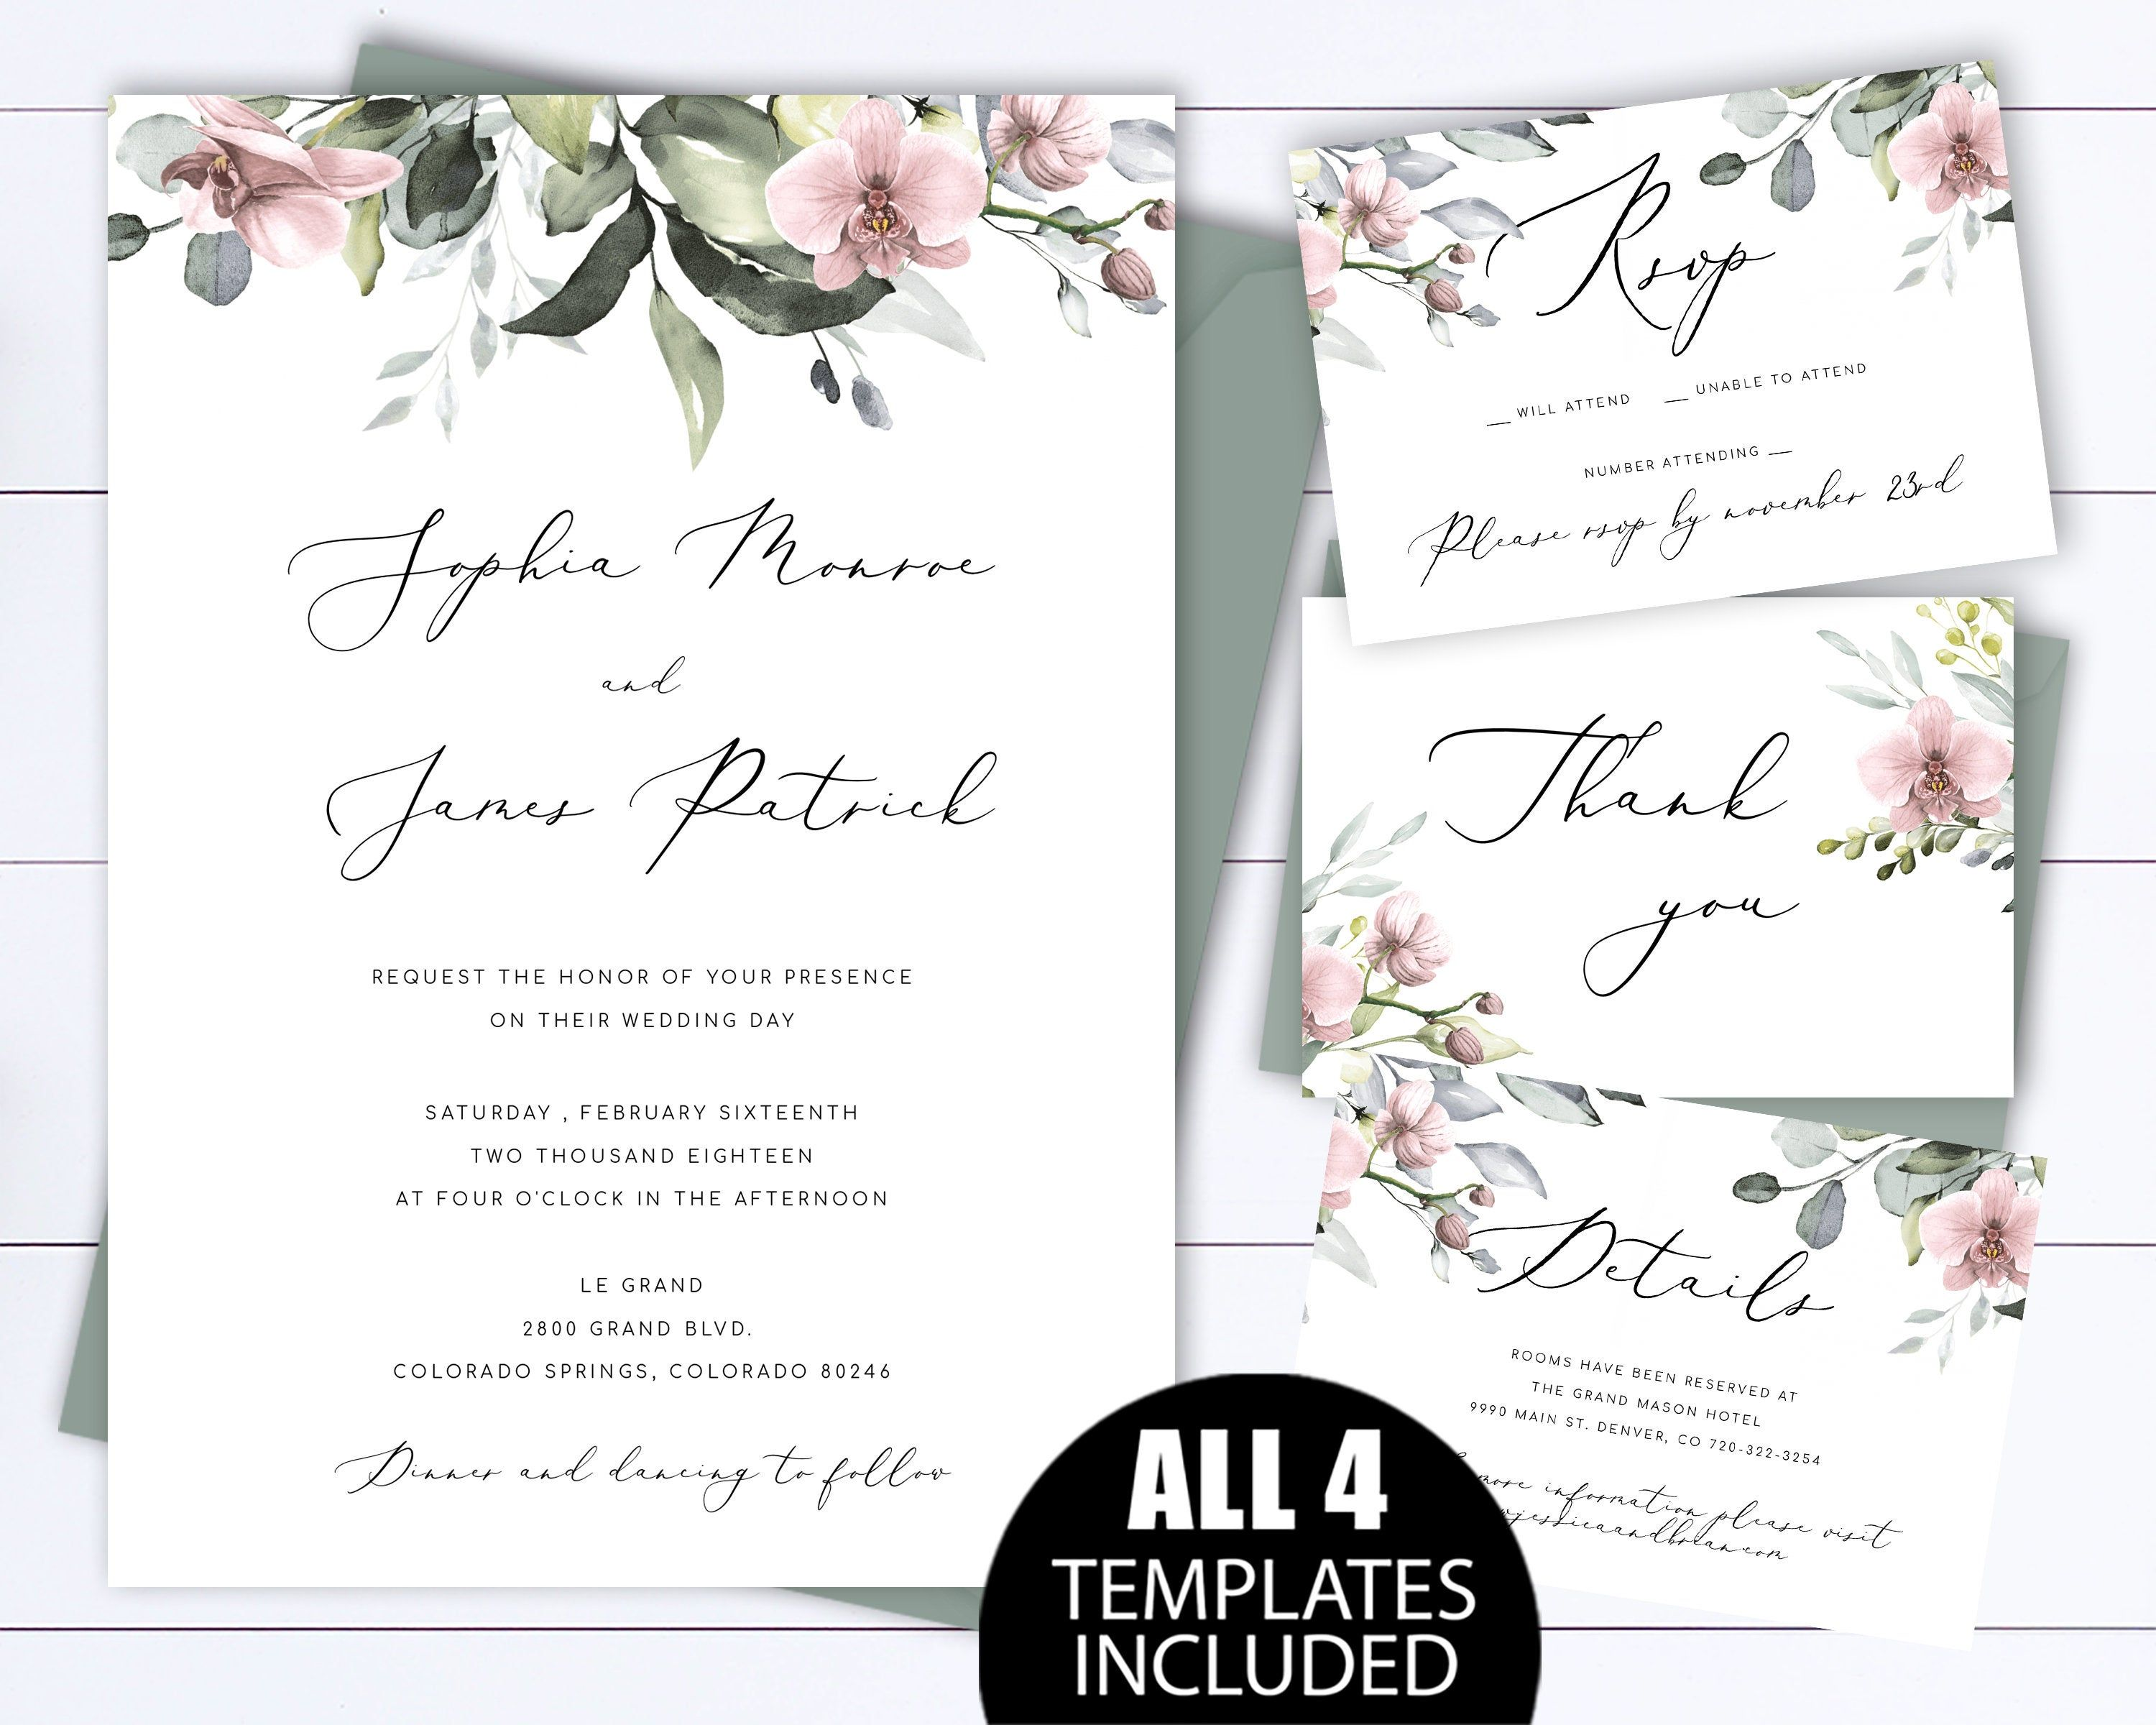 Blush Orchid Floral Wedding Invitation Templates Orchid  Etsy